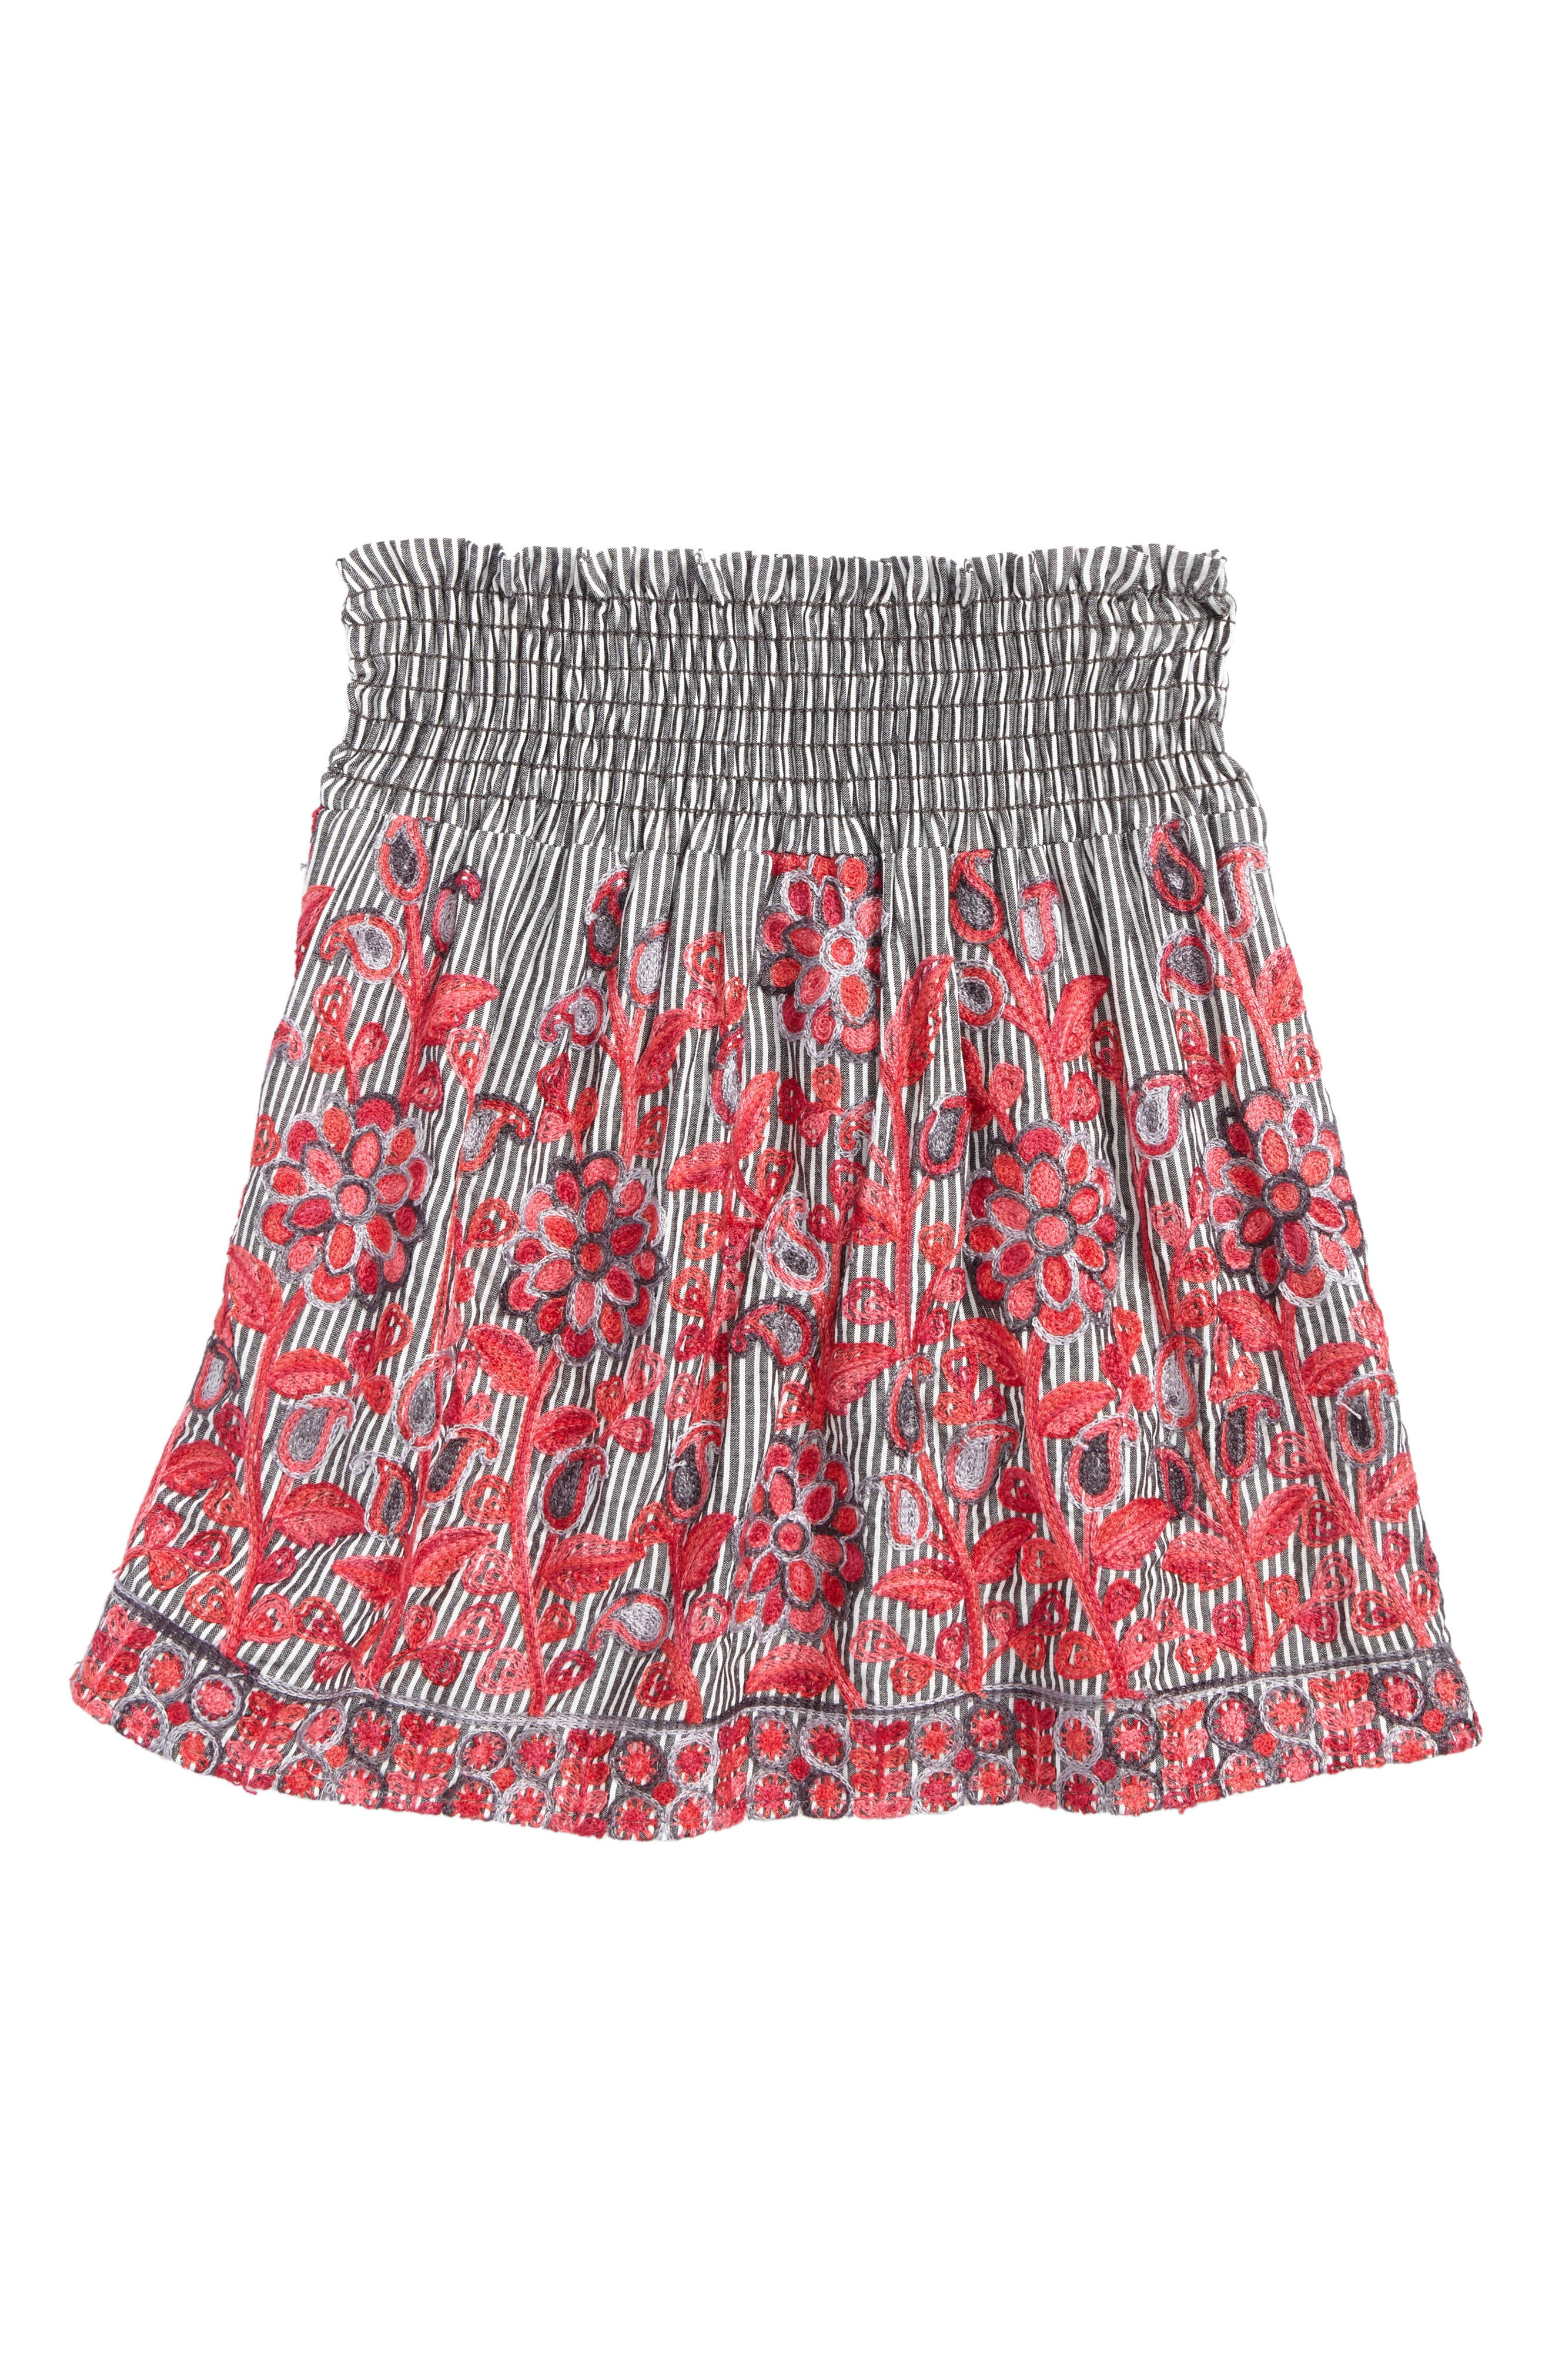 Flower Embroidered Skirt,                             Main thumbnail 1, color,